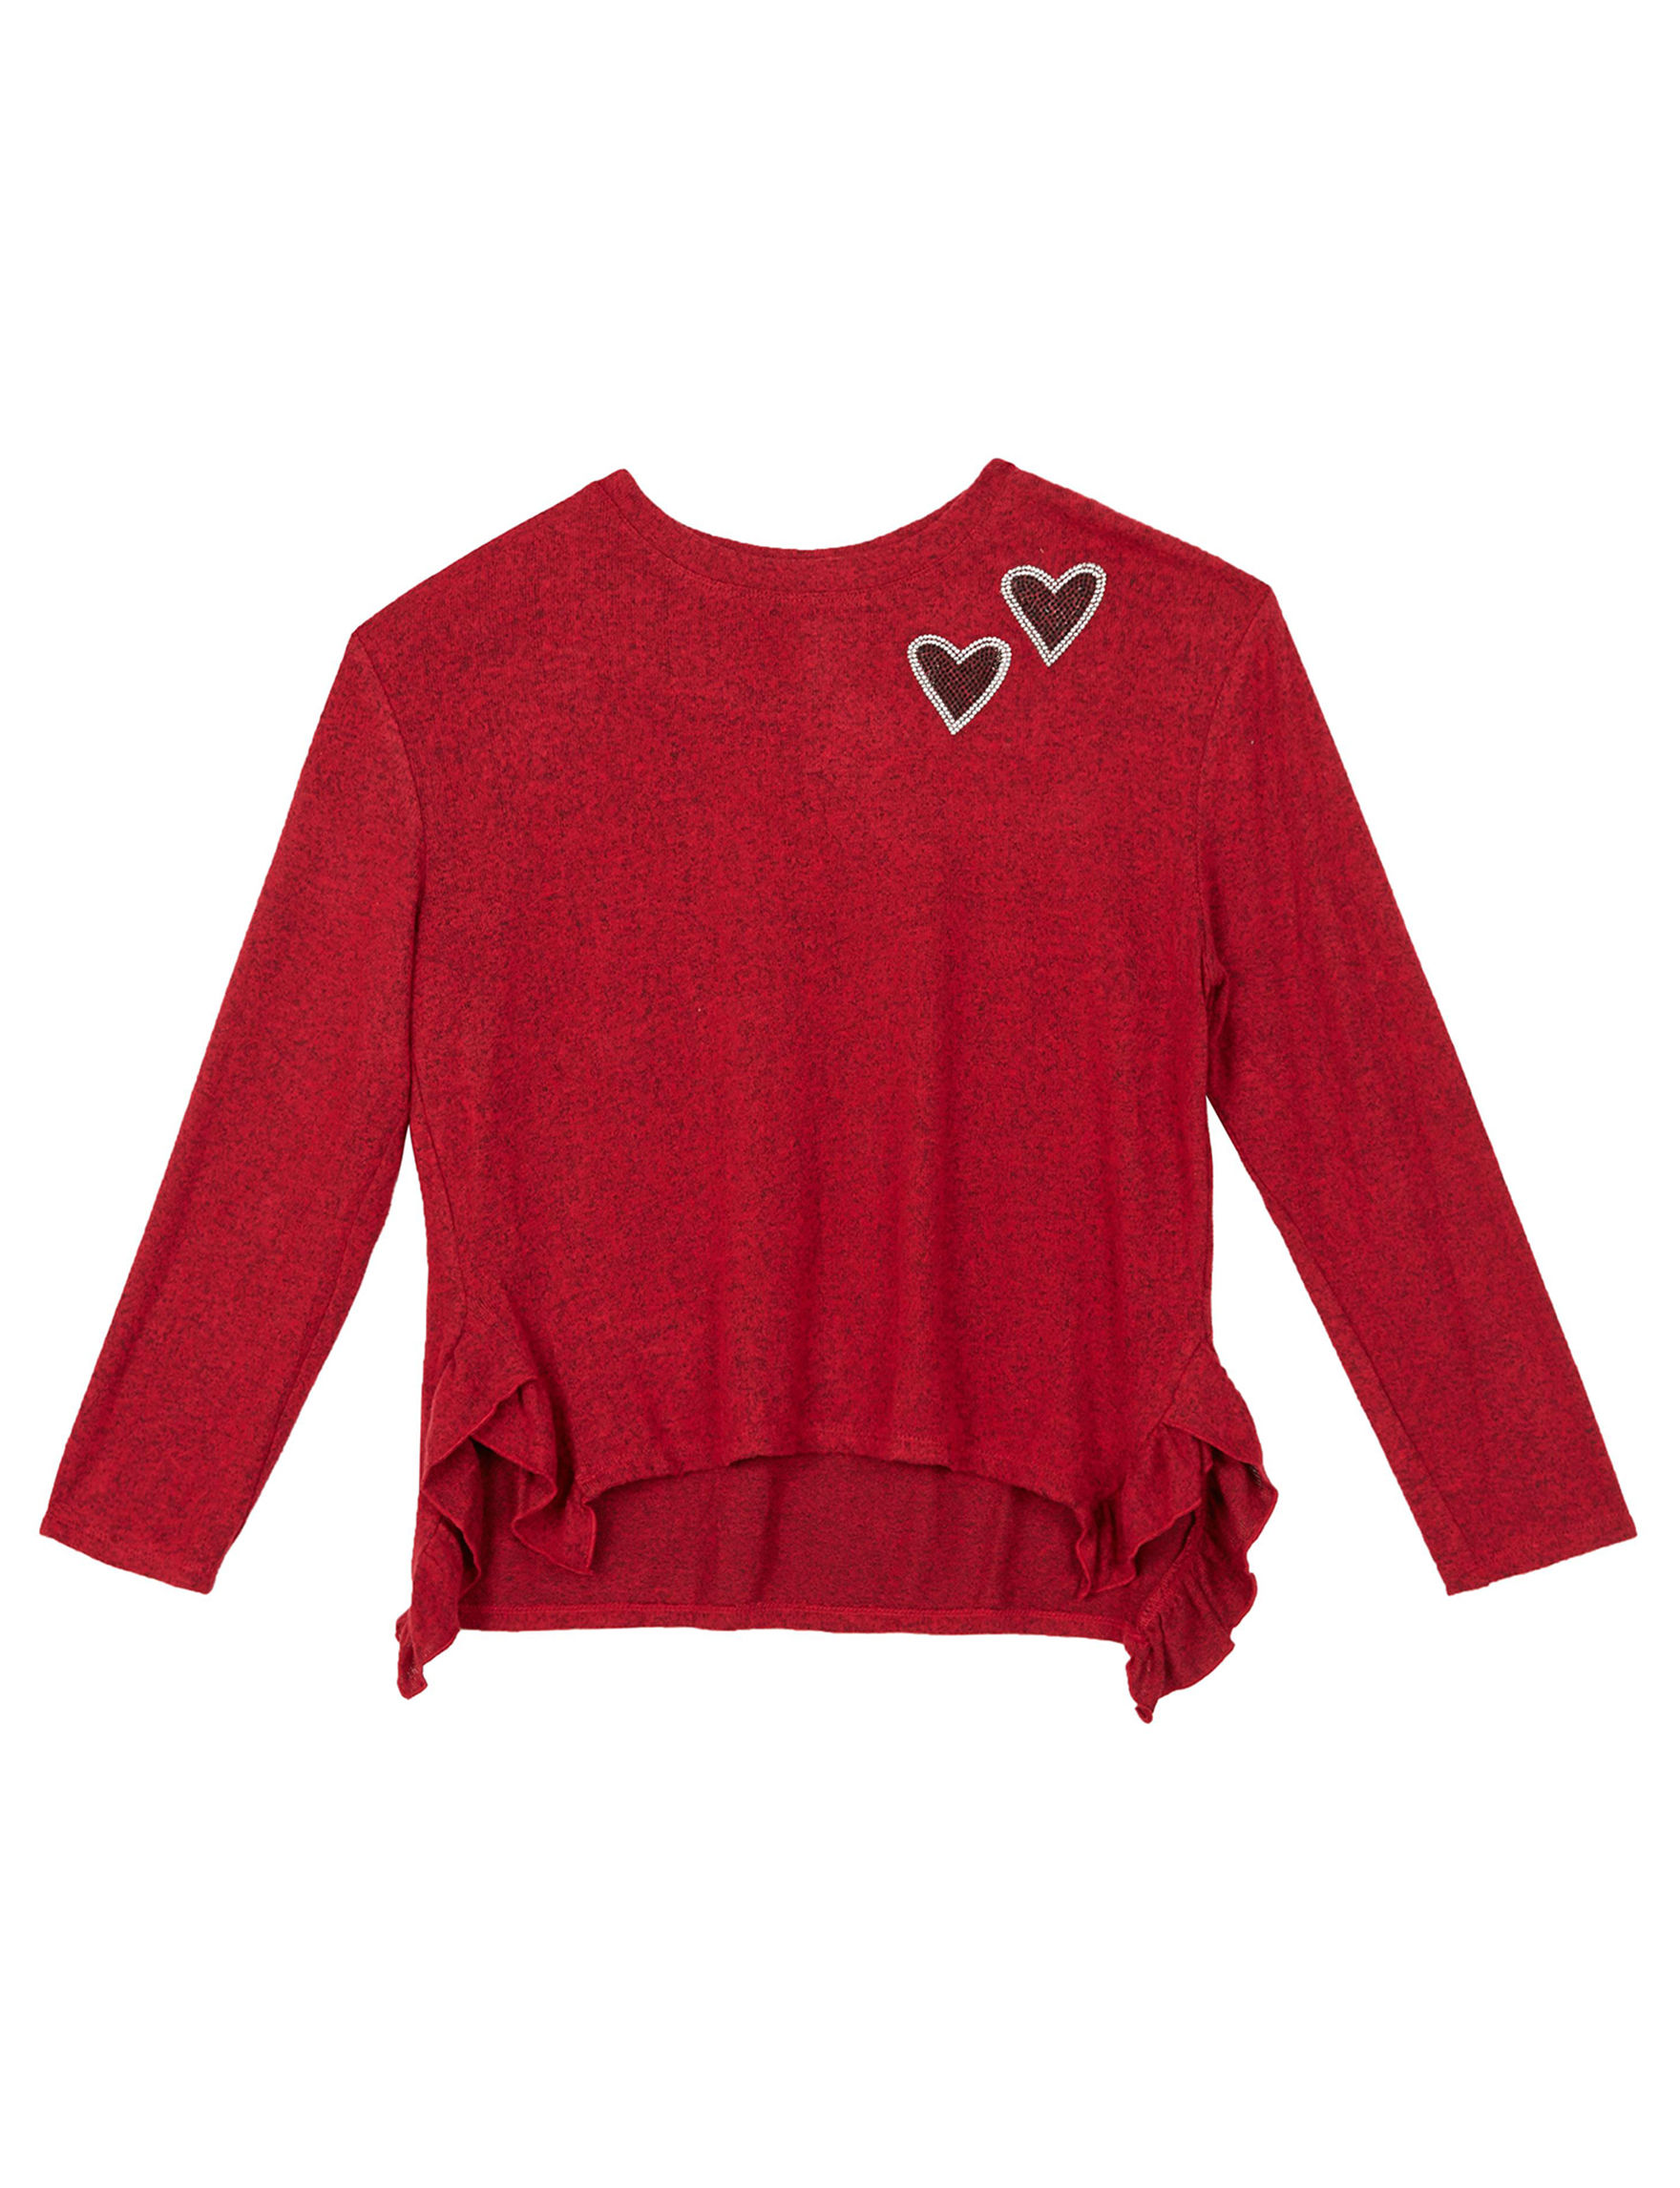 A. Byer Red Pull-overs